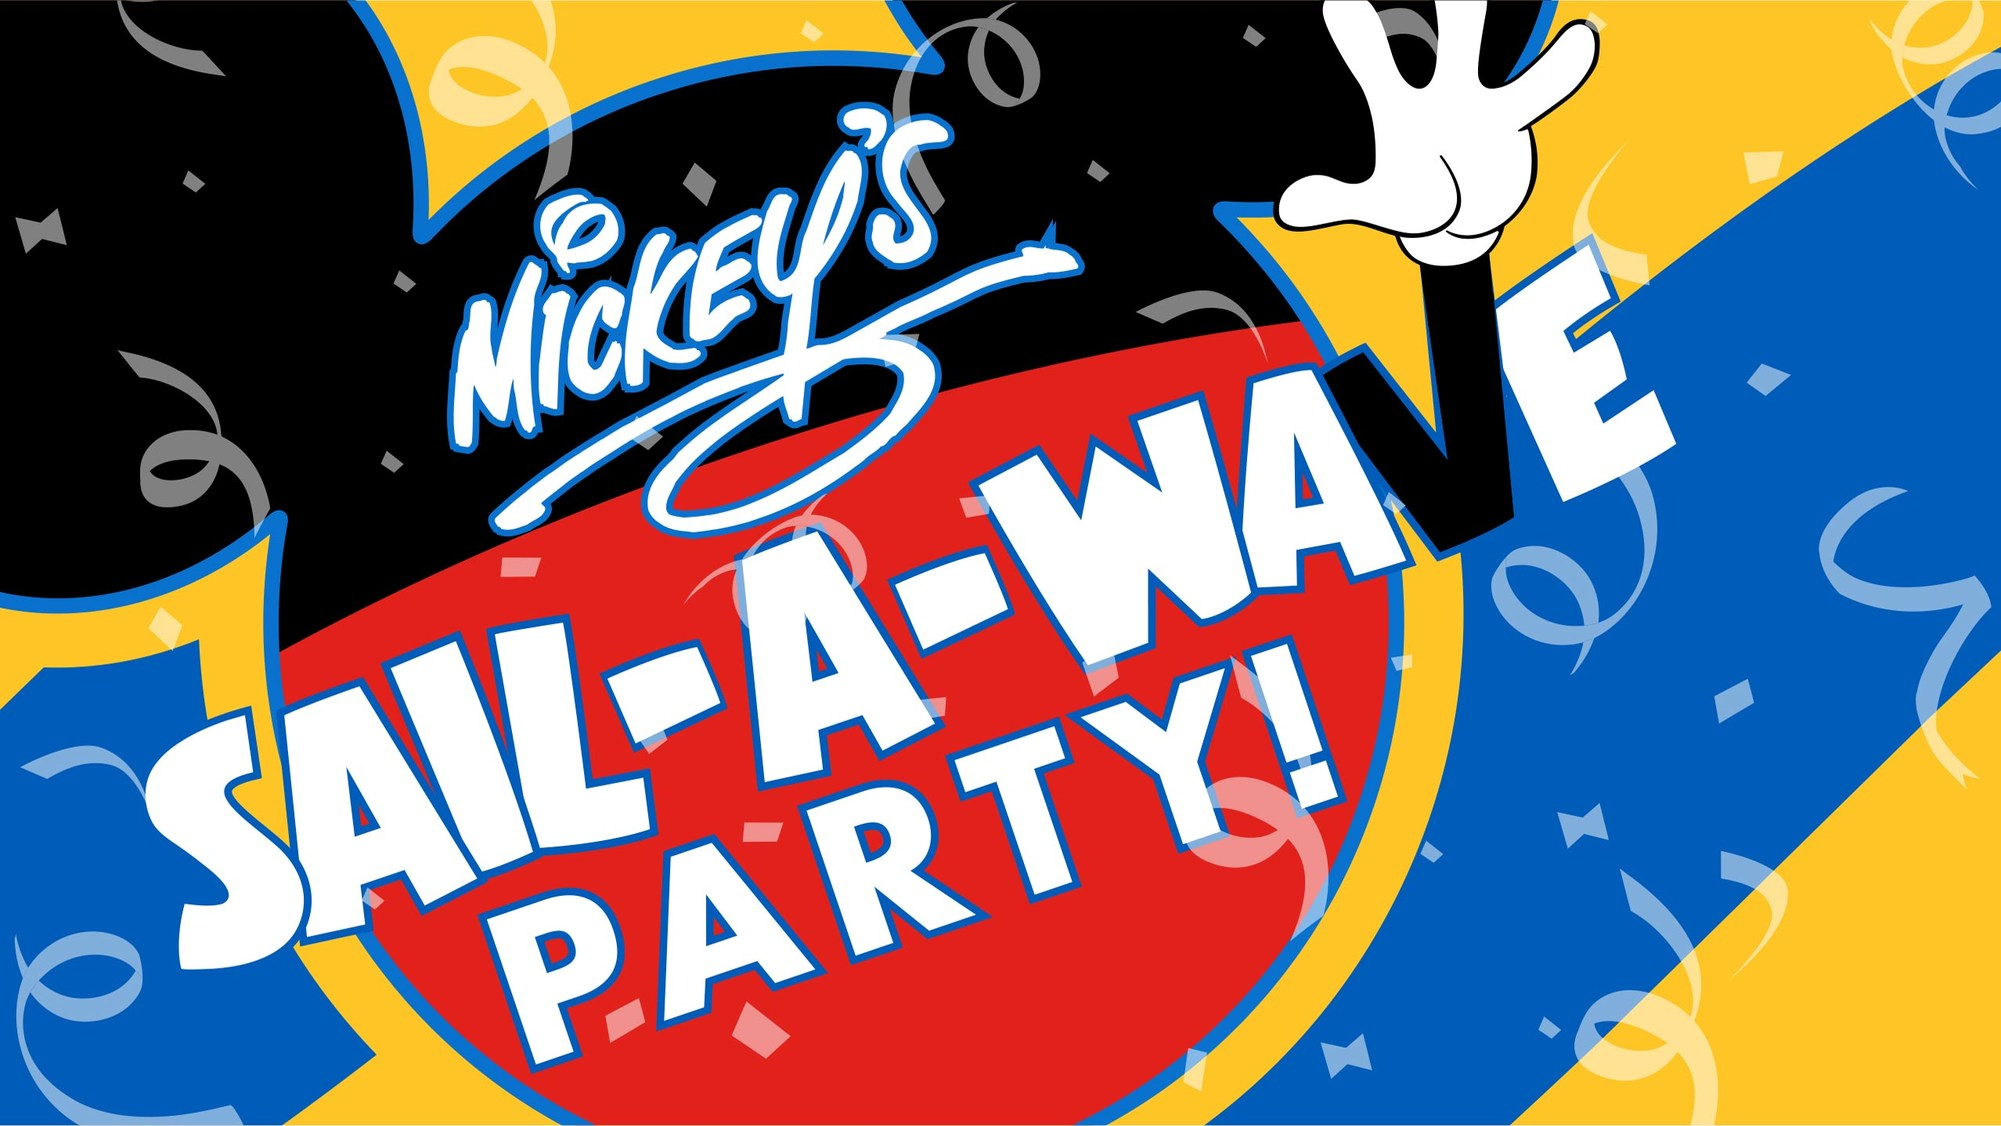 Mickey's Sail A Wave Deck Party Logo